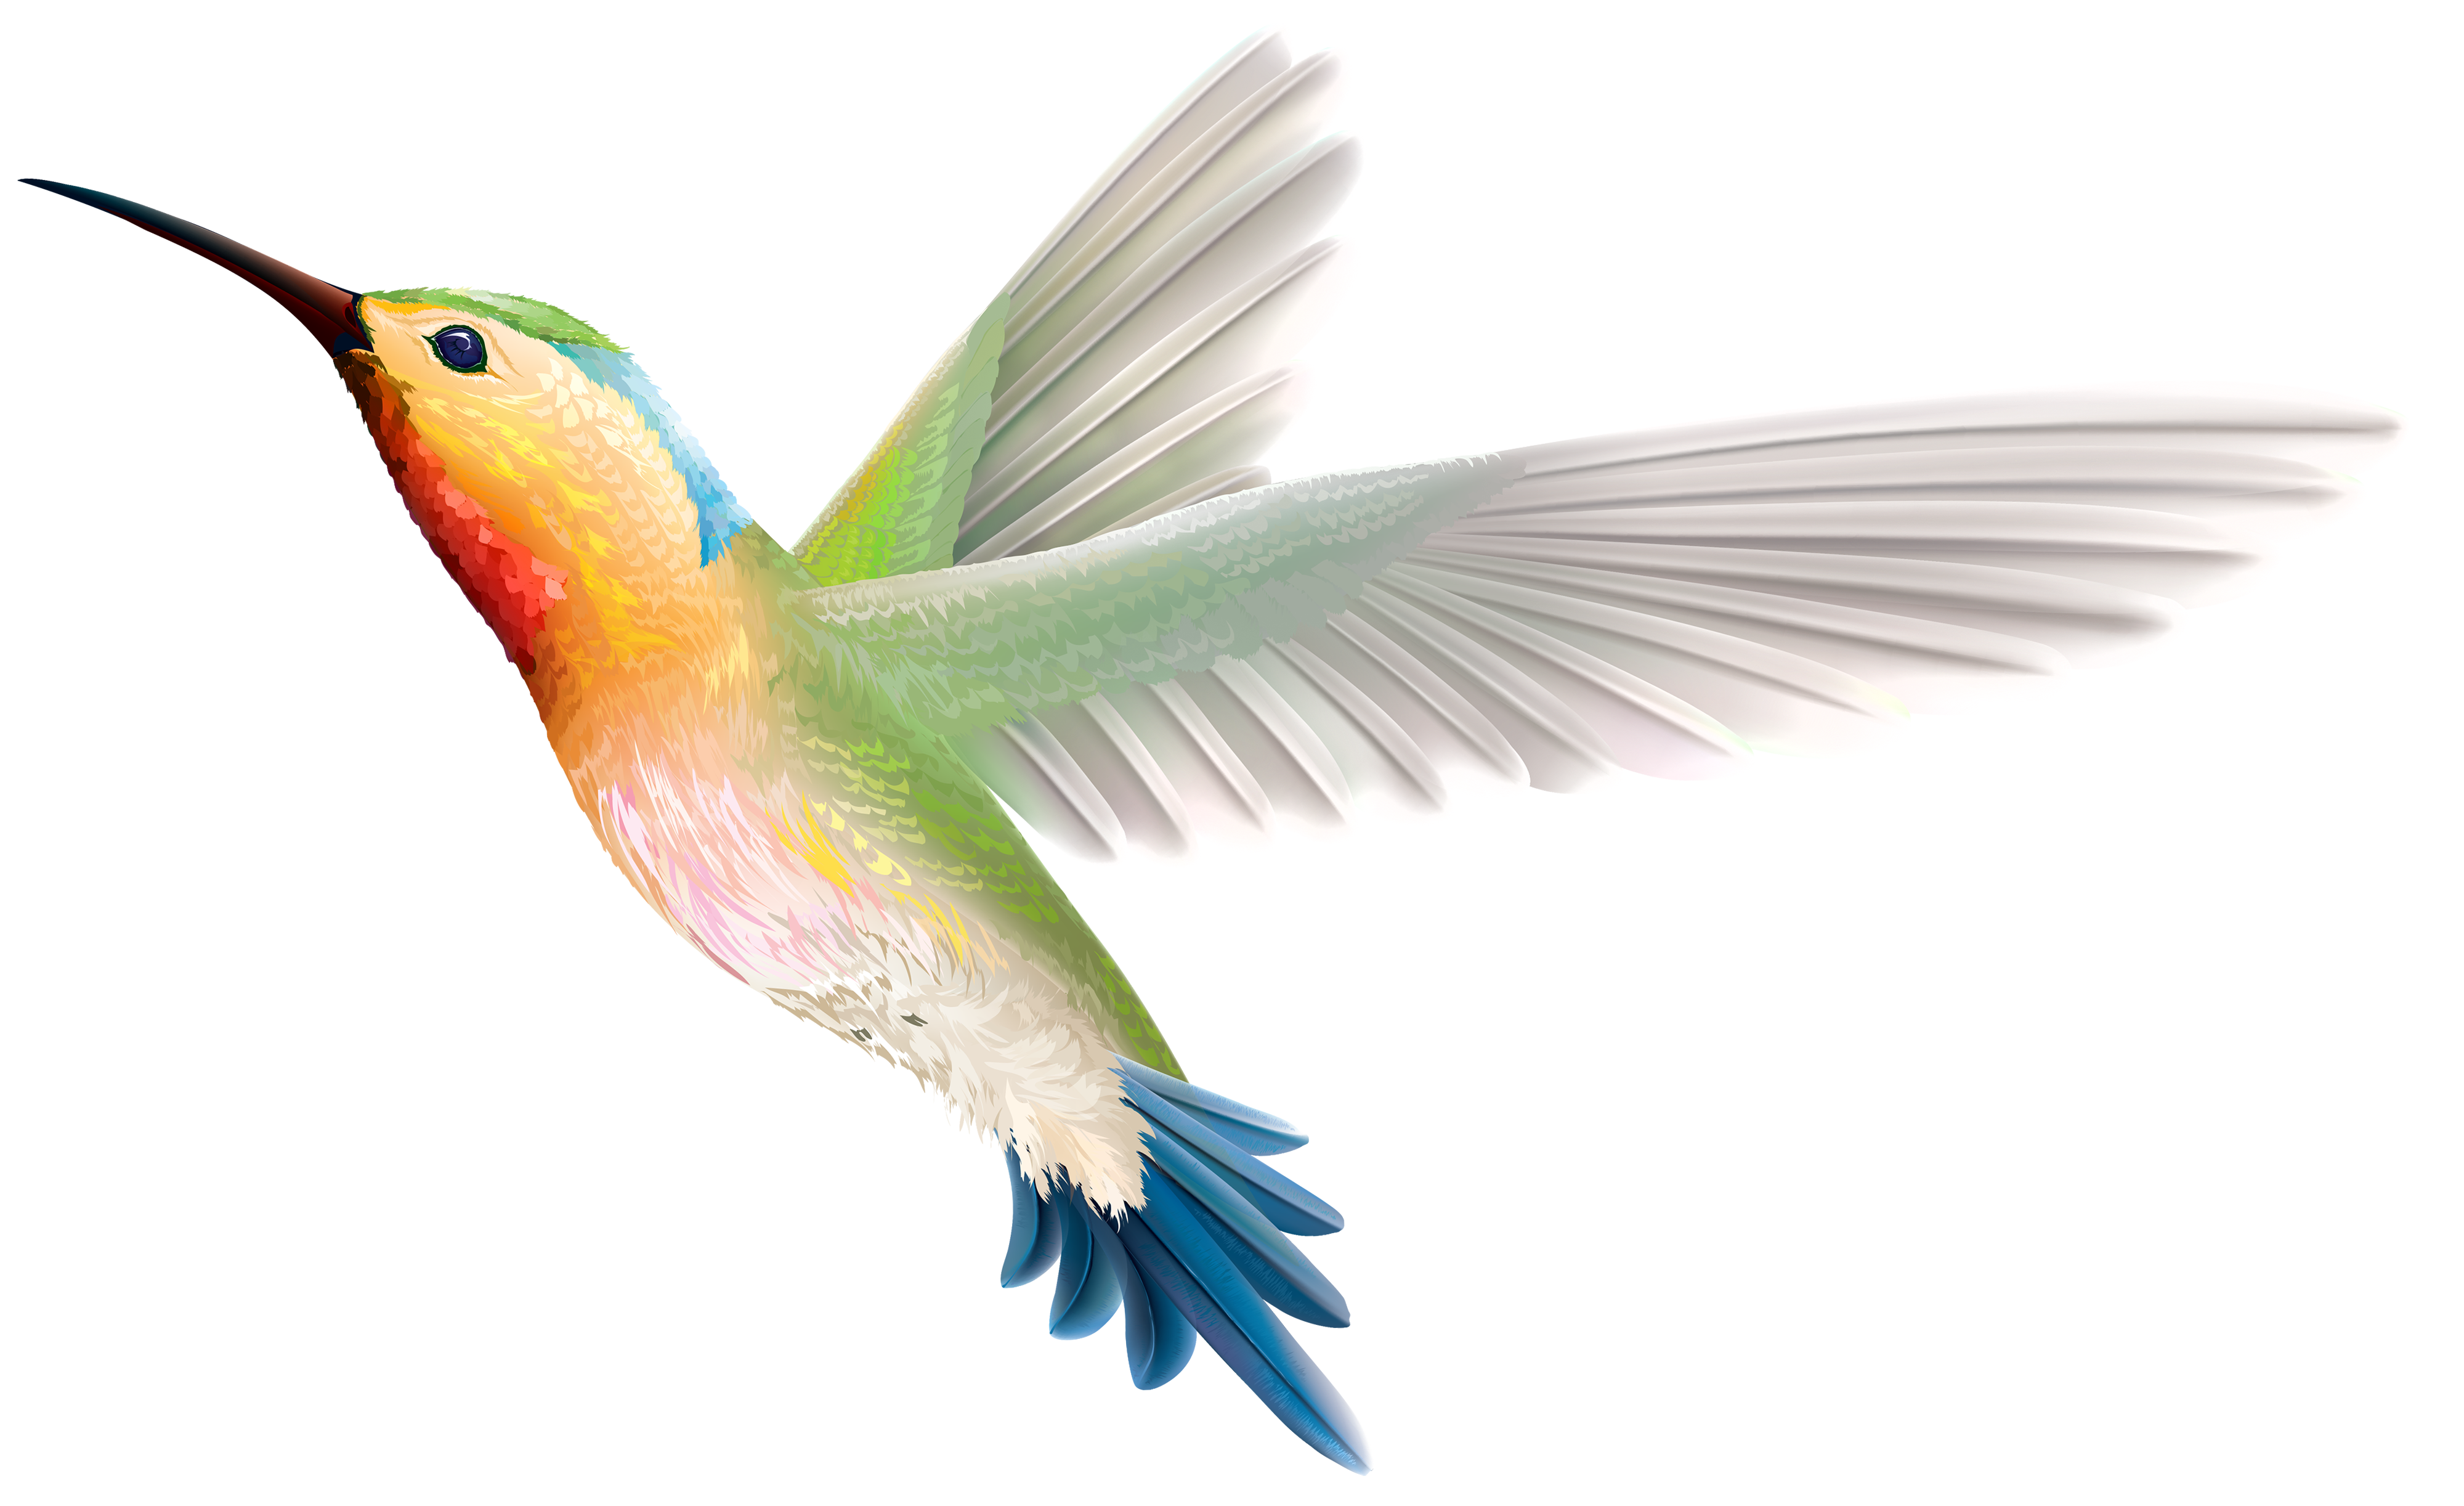 Png clipart best web. Hummingbird transparent clipart freeuse library